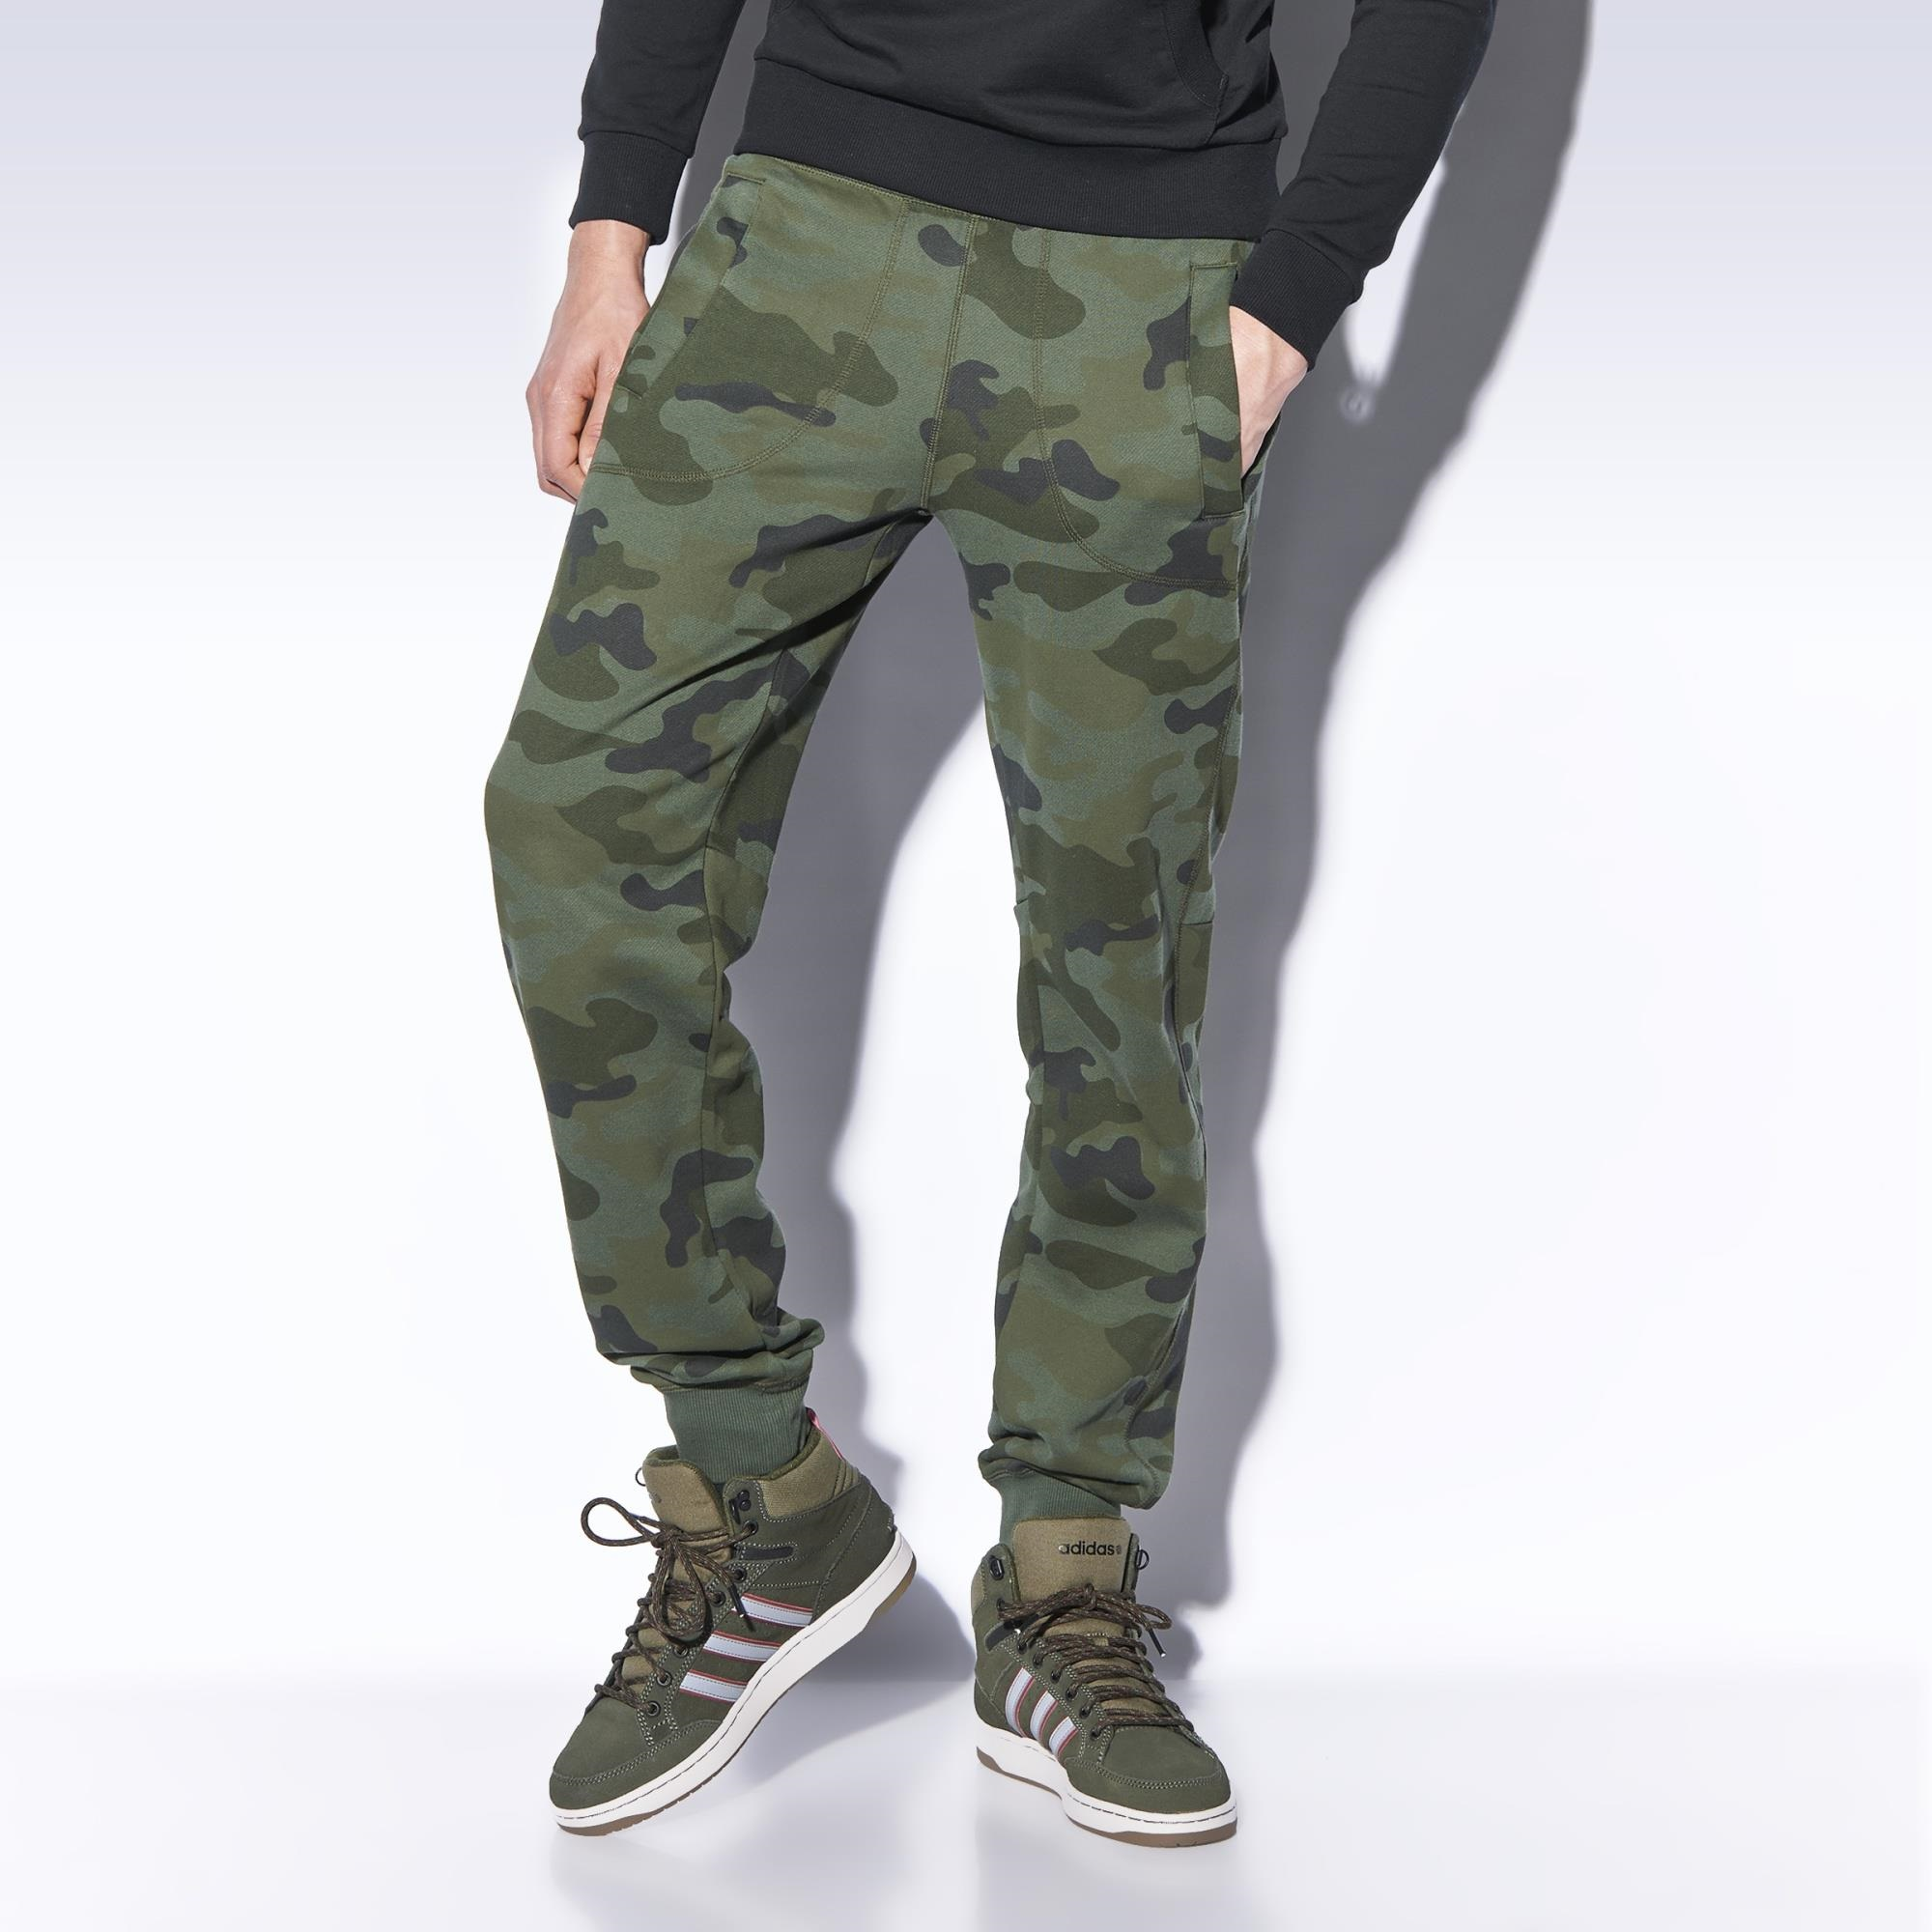 Adidas camouflage track pants